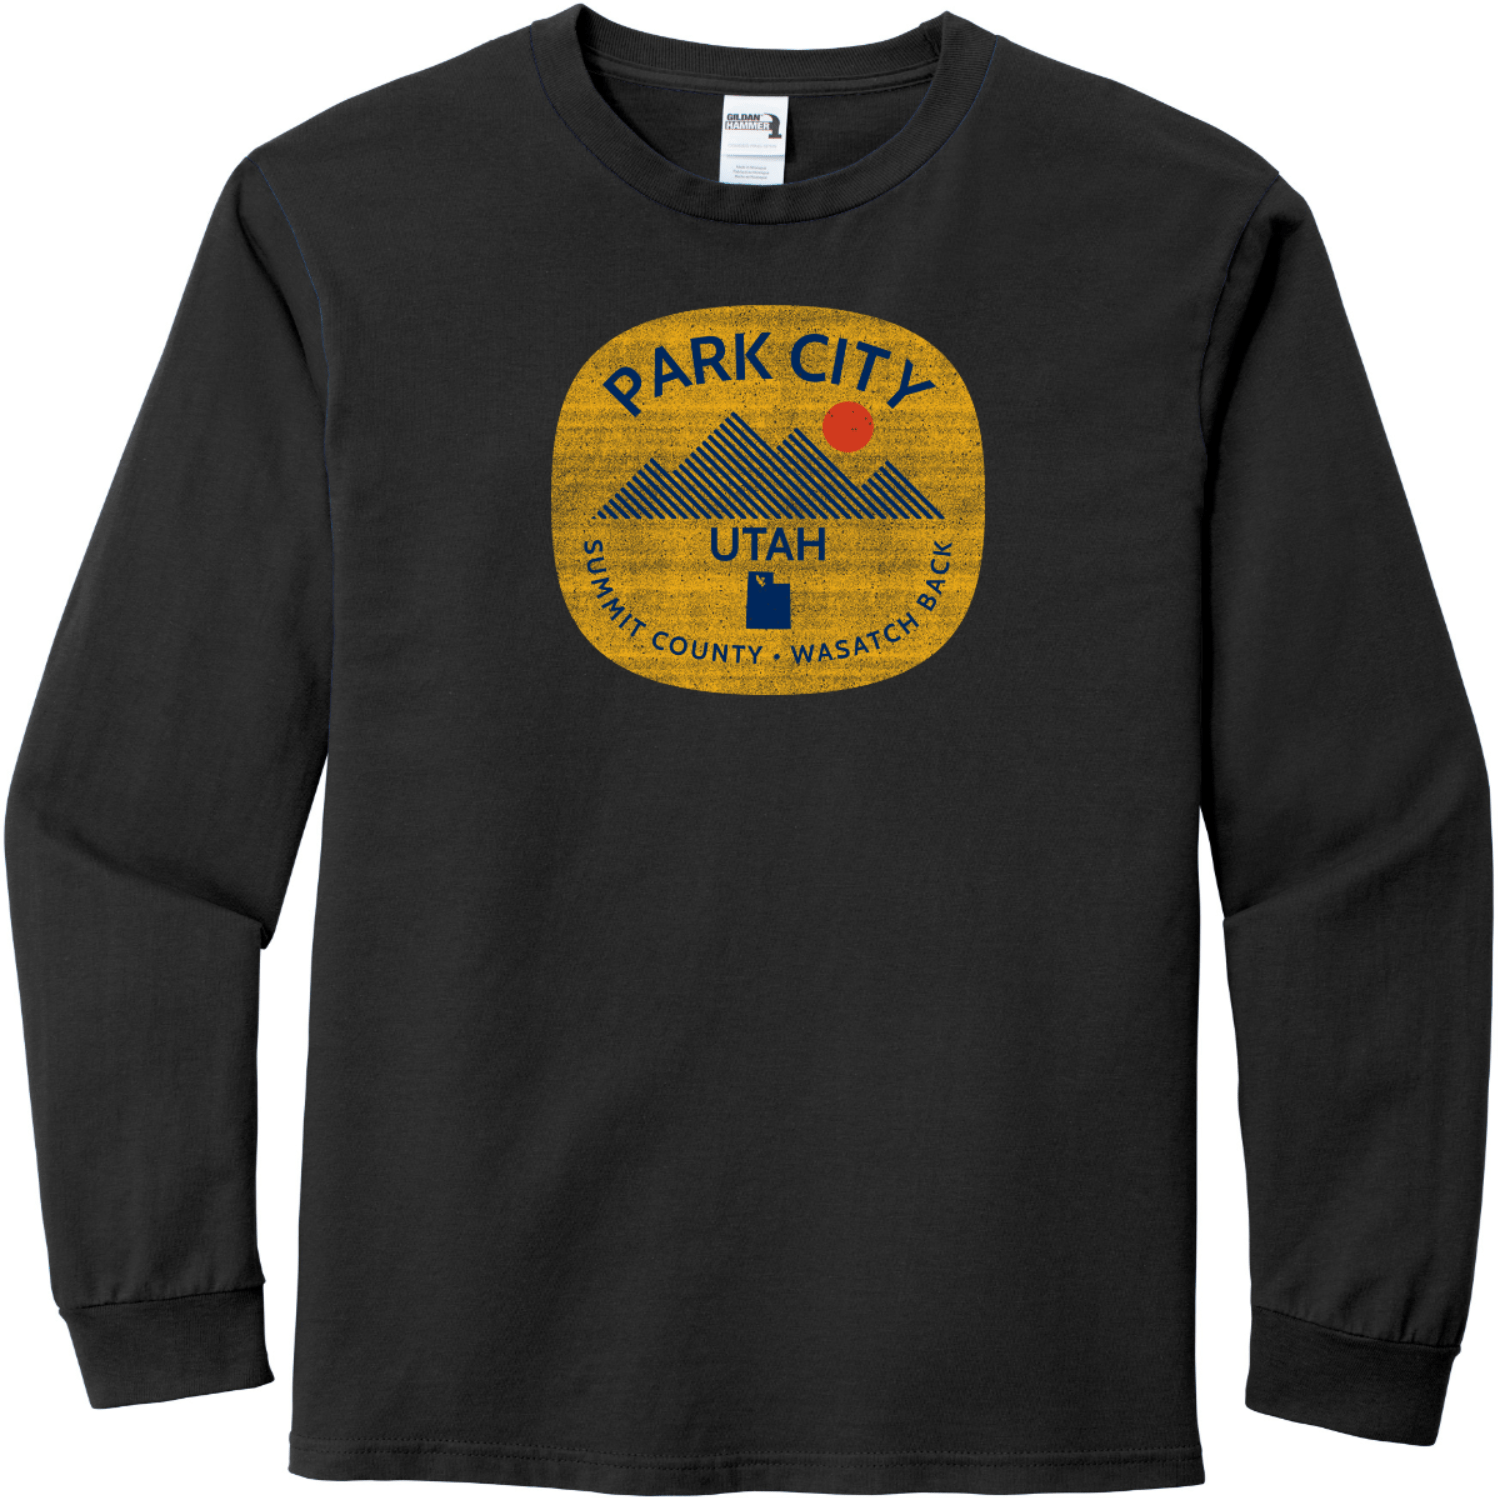 Park City Utah Long Sleeve T-Shirt Black Gildan Hammer Long Sleeve T Shirt